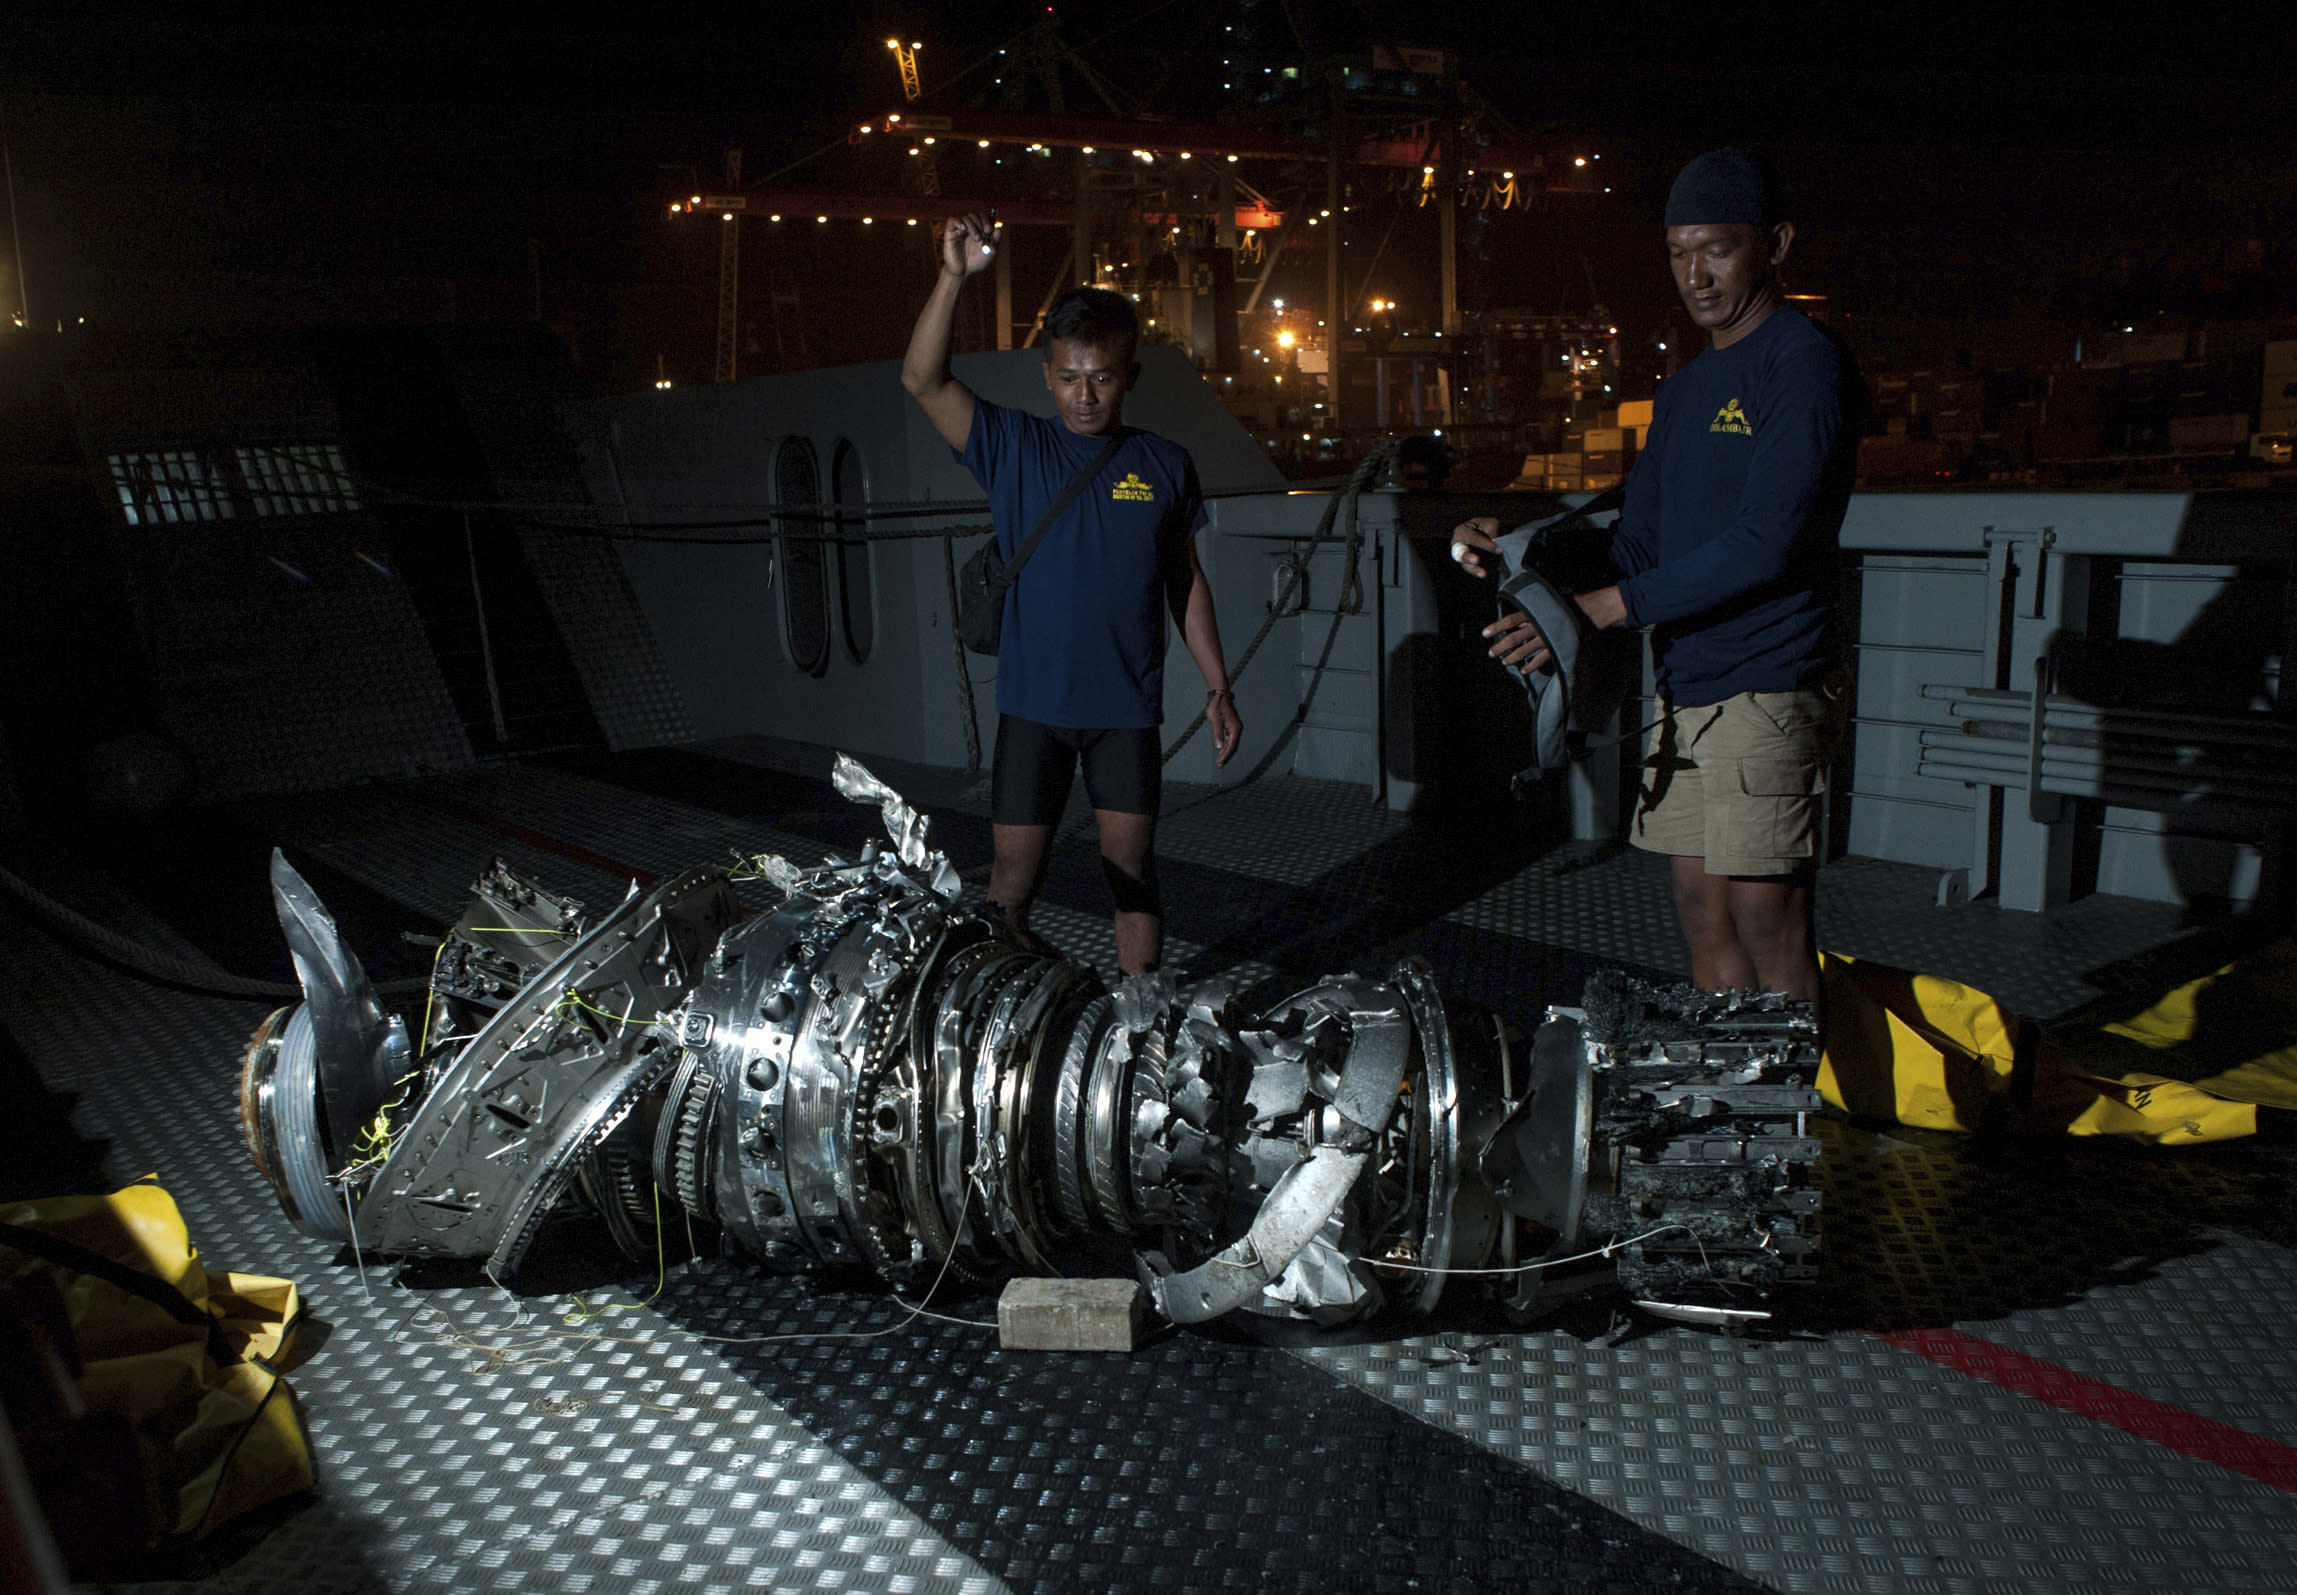 Navy divers inspect what is believed to be engine of the crashed Lion Air jet after it was retrieved from the sea floor, at Tanjung Priok Port in Jakarta, Indonesia, Saturday, Nov. 3, 2018. The brand new Boeing 737 MAX 8 jet plunged into the Java Sea just minutes after takeoff from Jakarta early on Oct. 29, killing all of its passengers on board. (AP Photo/Fauzy Chaniago)